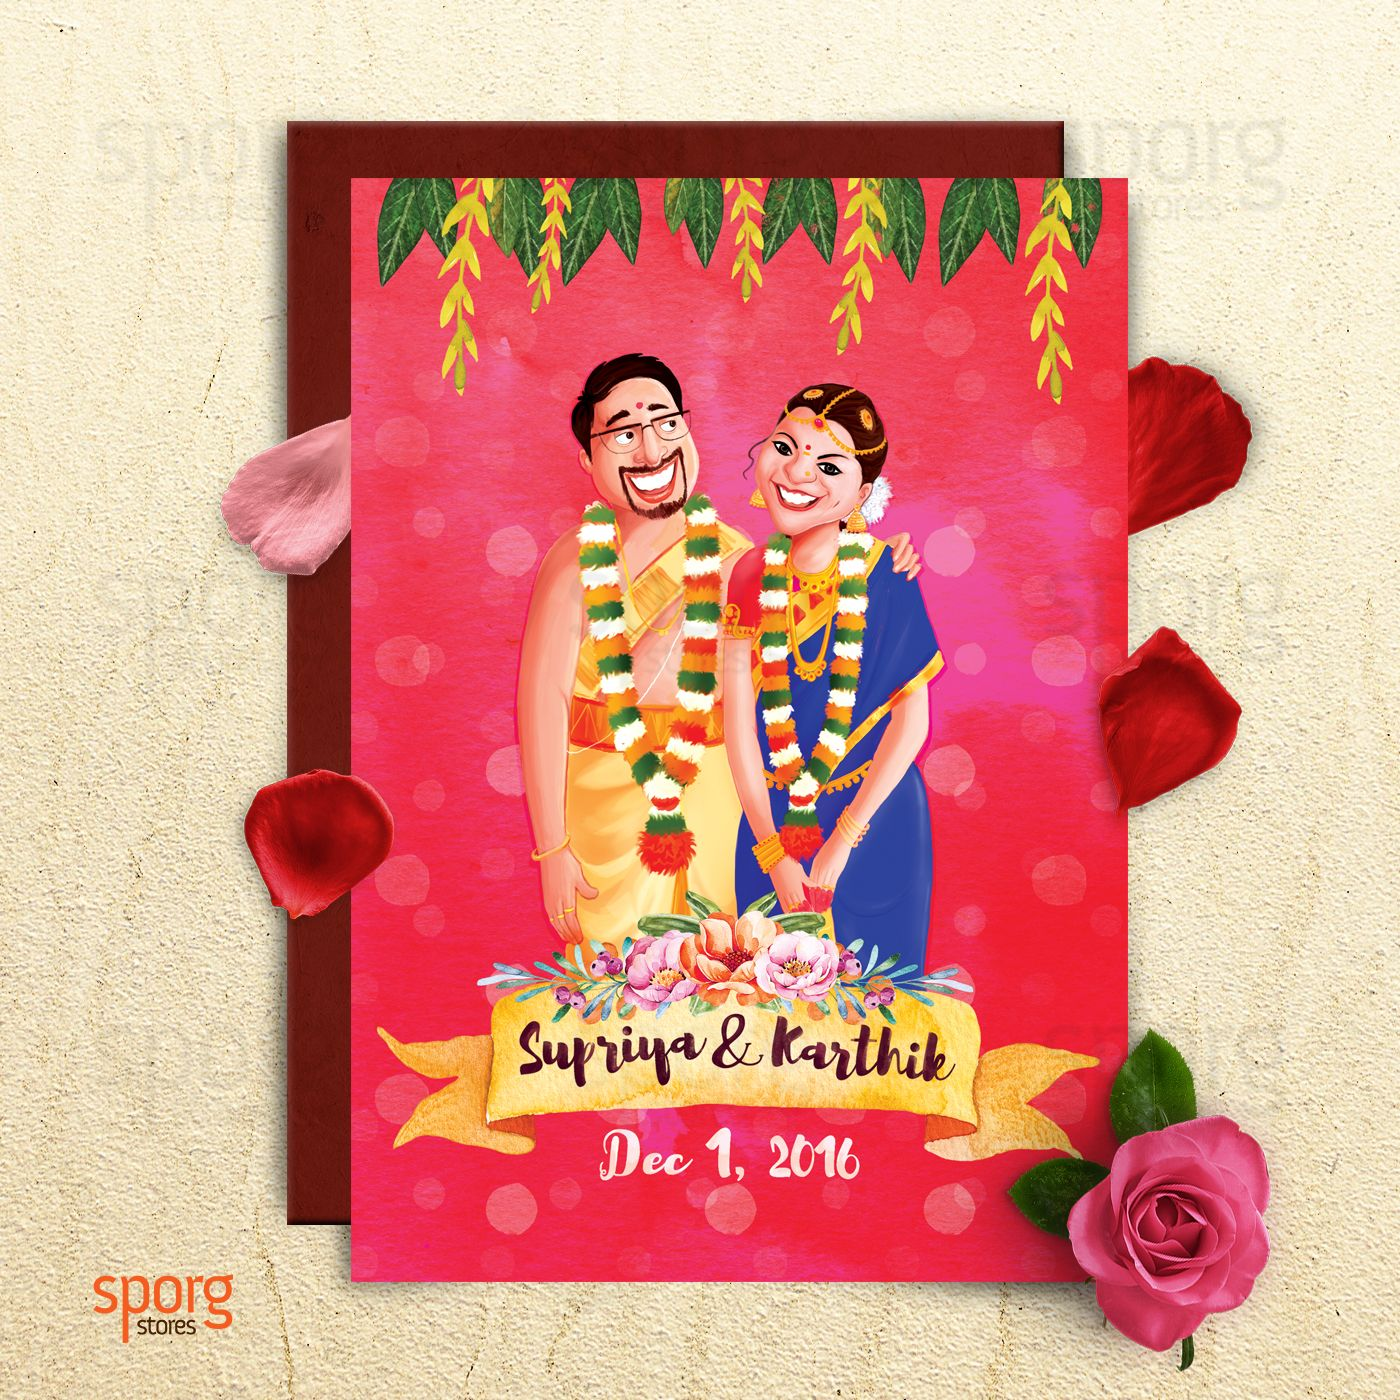 Related image tambrahm wedding invitation pinterest